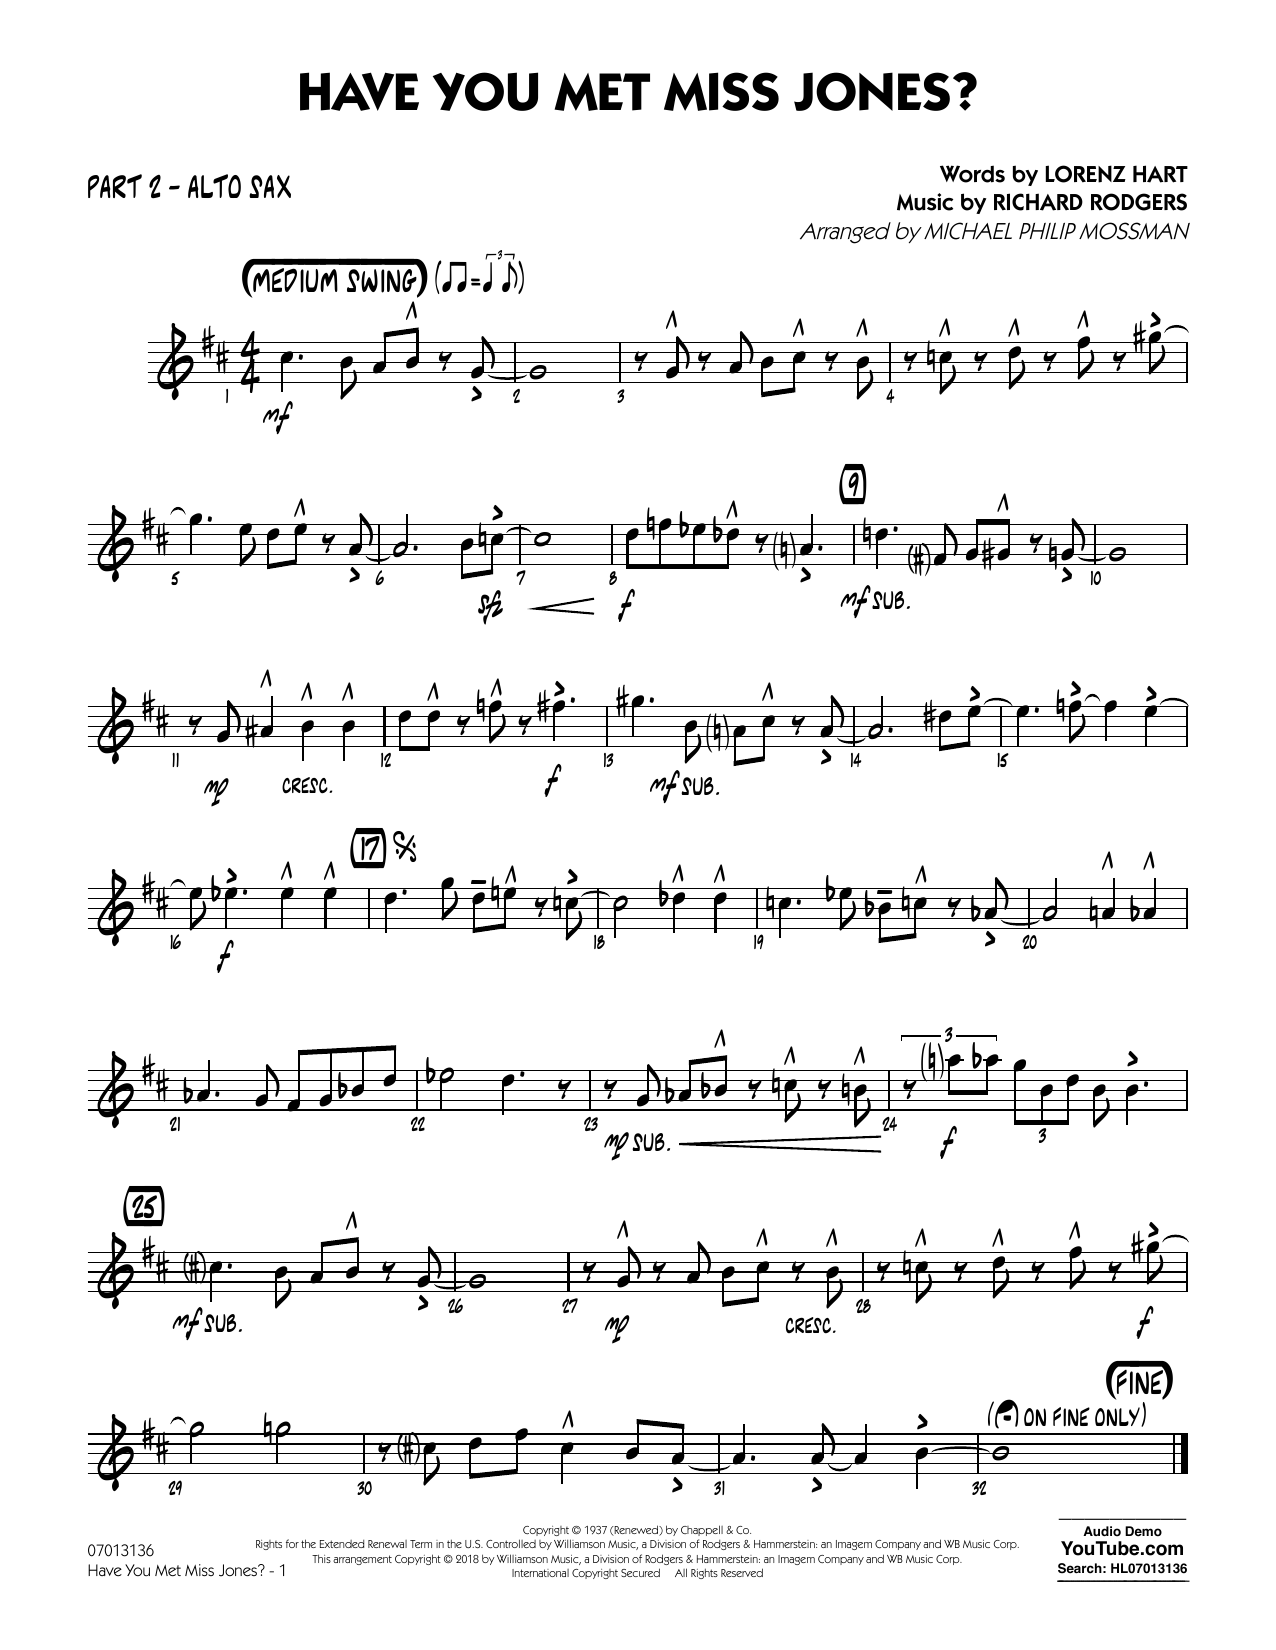 Rodgers & Hart Have You Met Miss Jones? (arr. Michael Mossman) - Part 2 - Alto Sax sheet music notes and chords. Download Printable PDF.